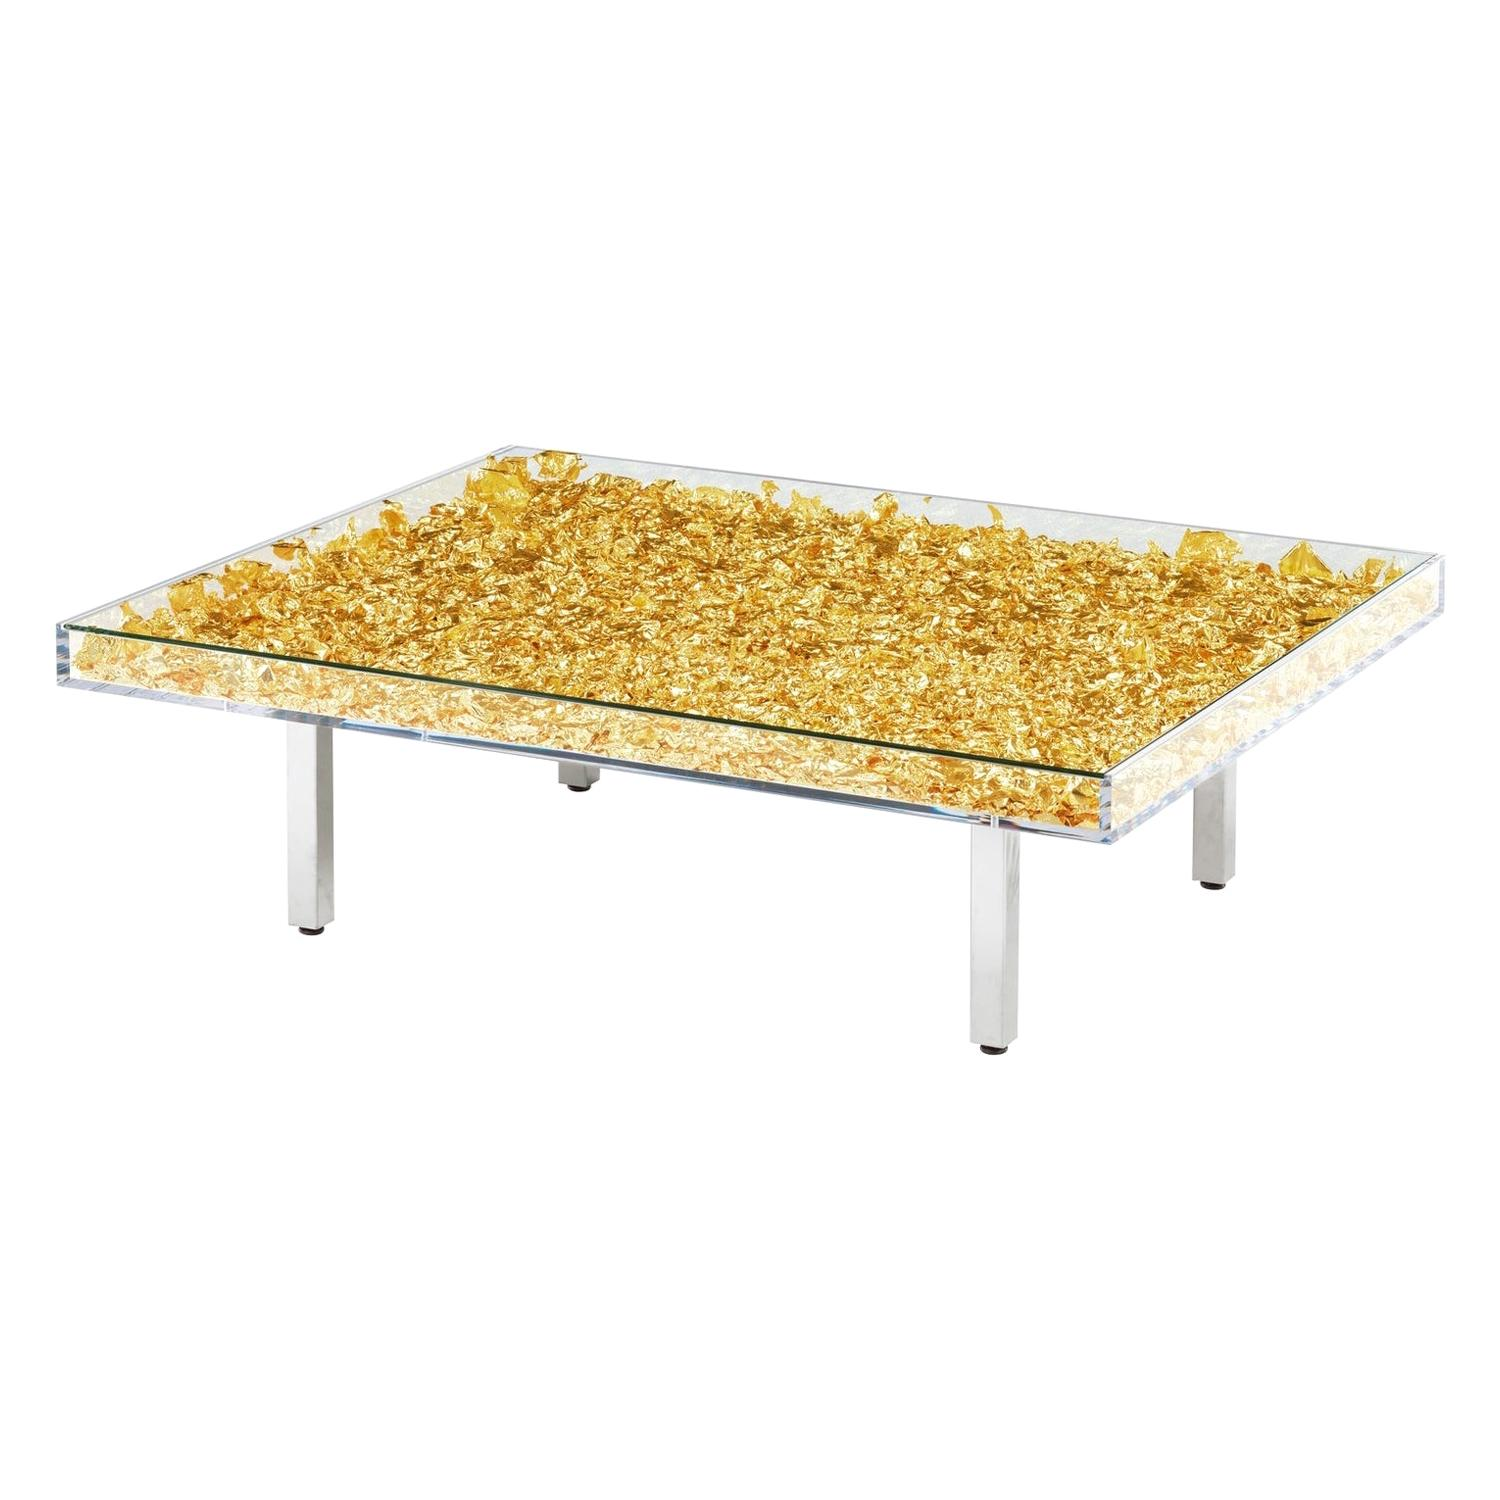 """In Stock in Los Angeles, Yves Klein Gold """"Monogold"""" Glass Table, Made in France"""